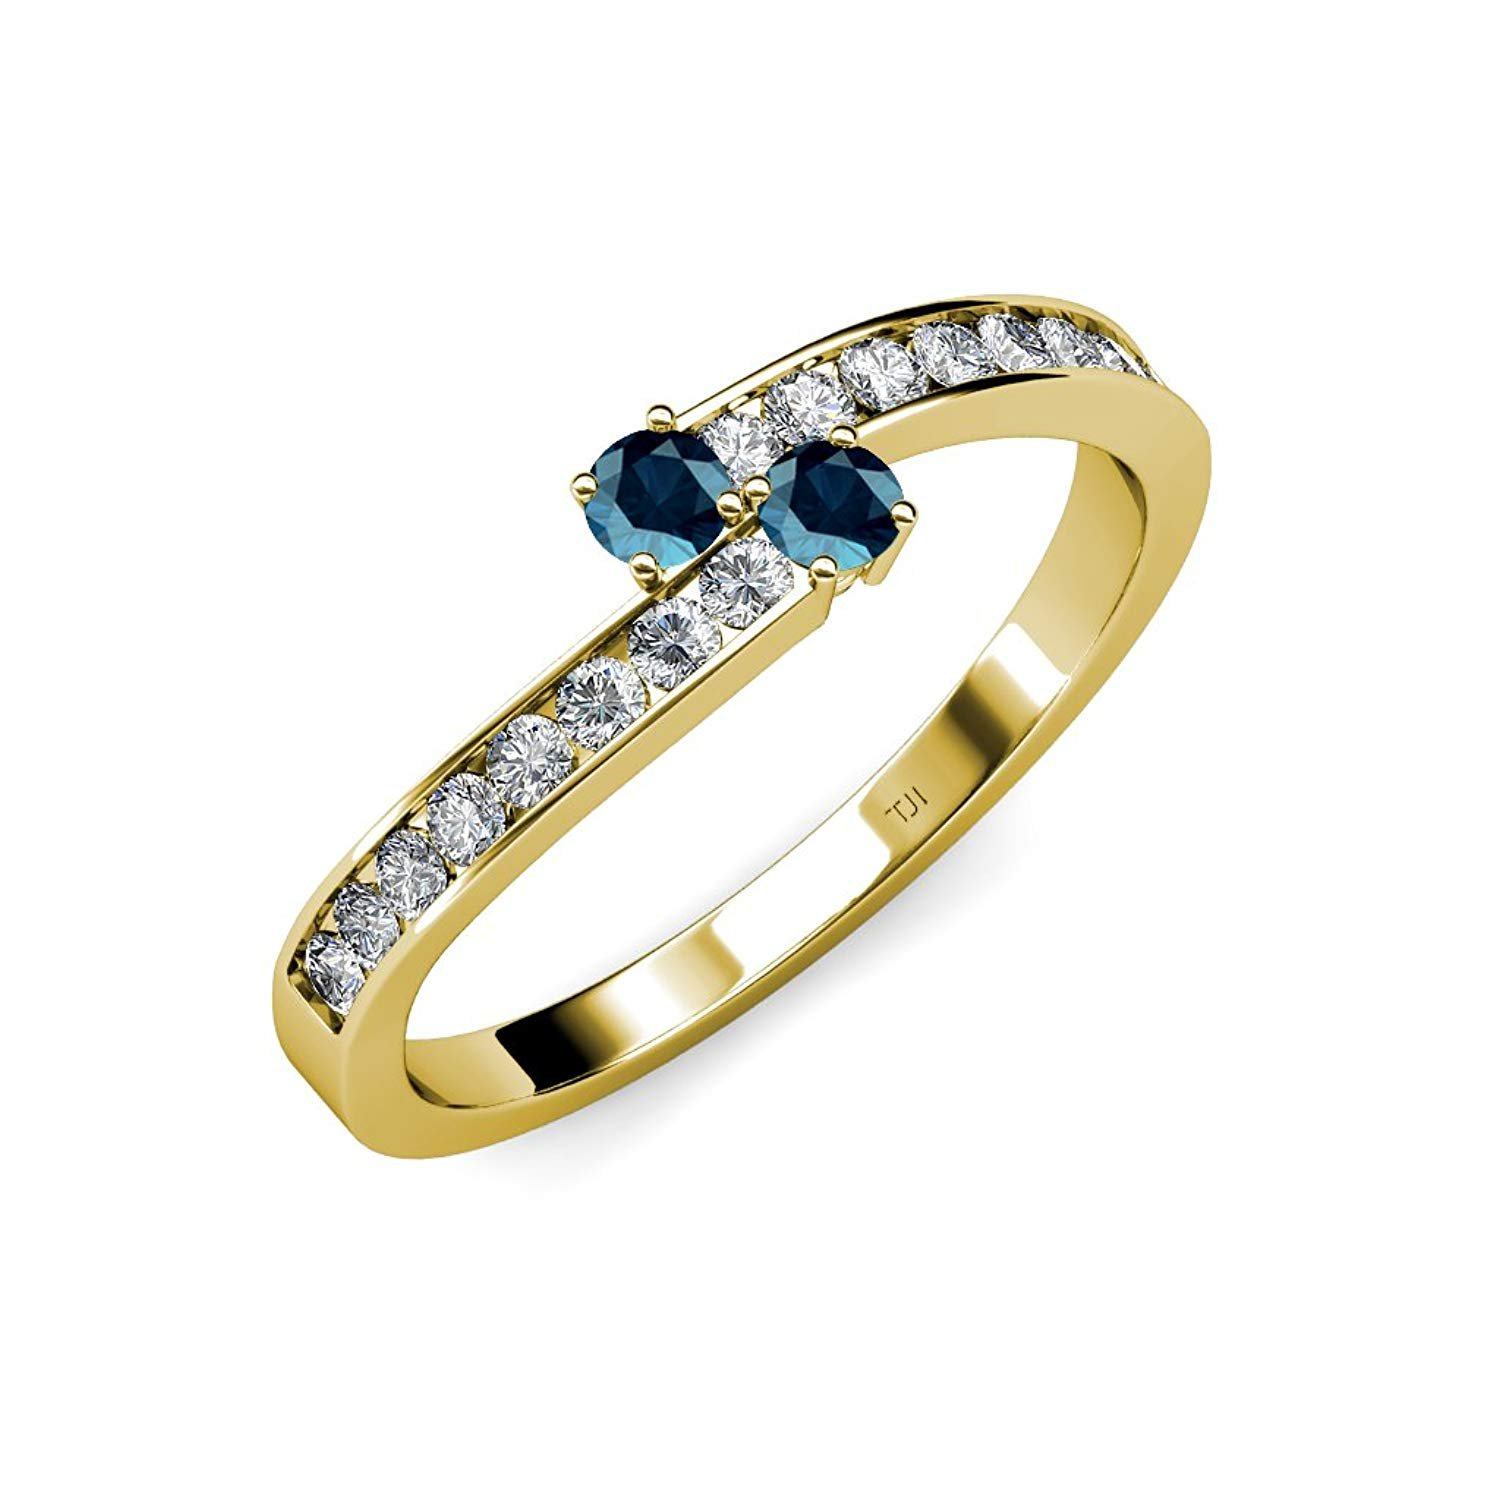 Blue Diamond 2 Stone with Side Diamonds Bypass Engagement Ring 0.86 ct tw in 14K Yellow Gold.size 5.5 by TriJewels